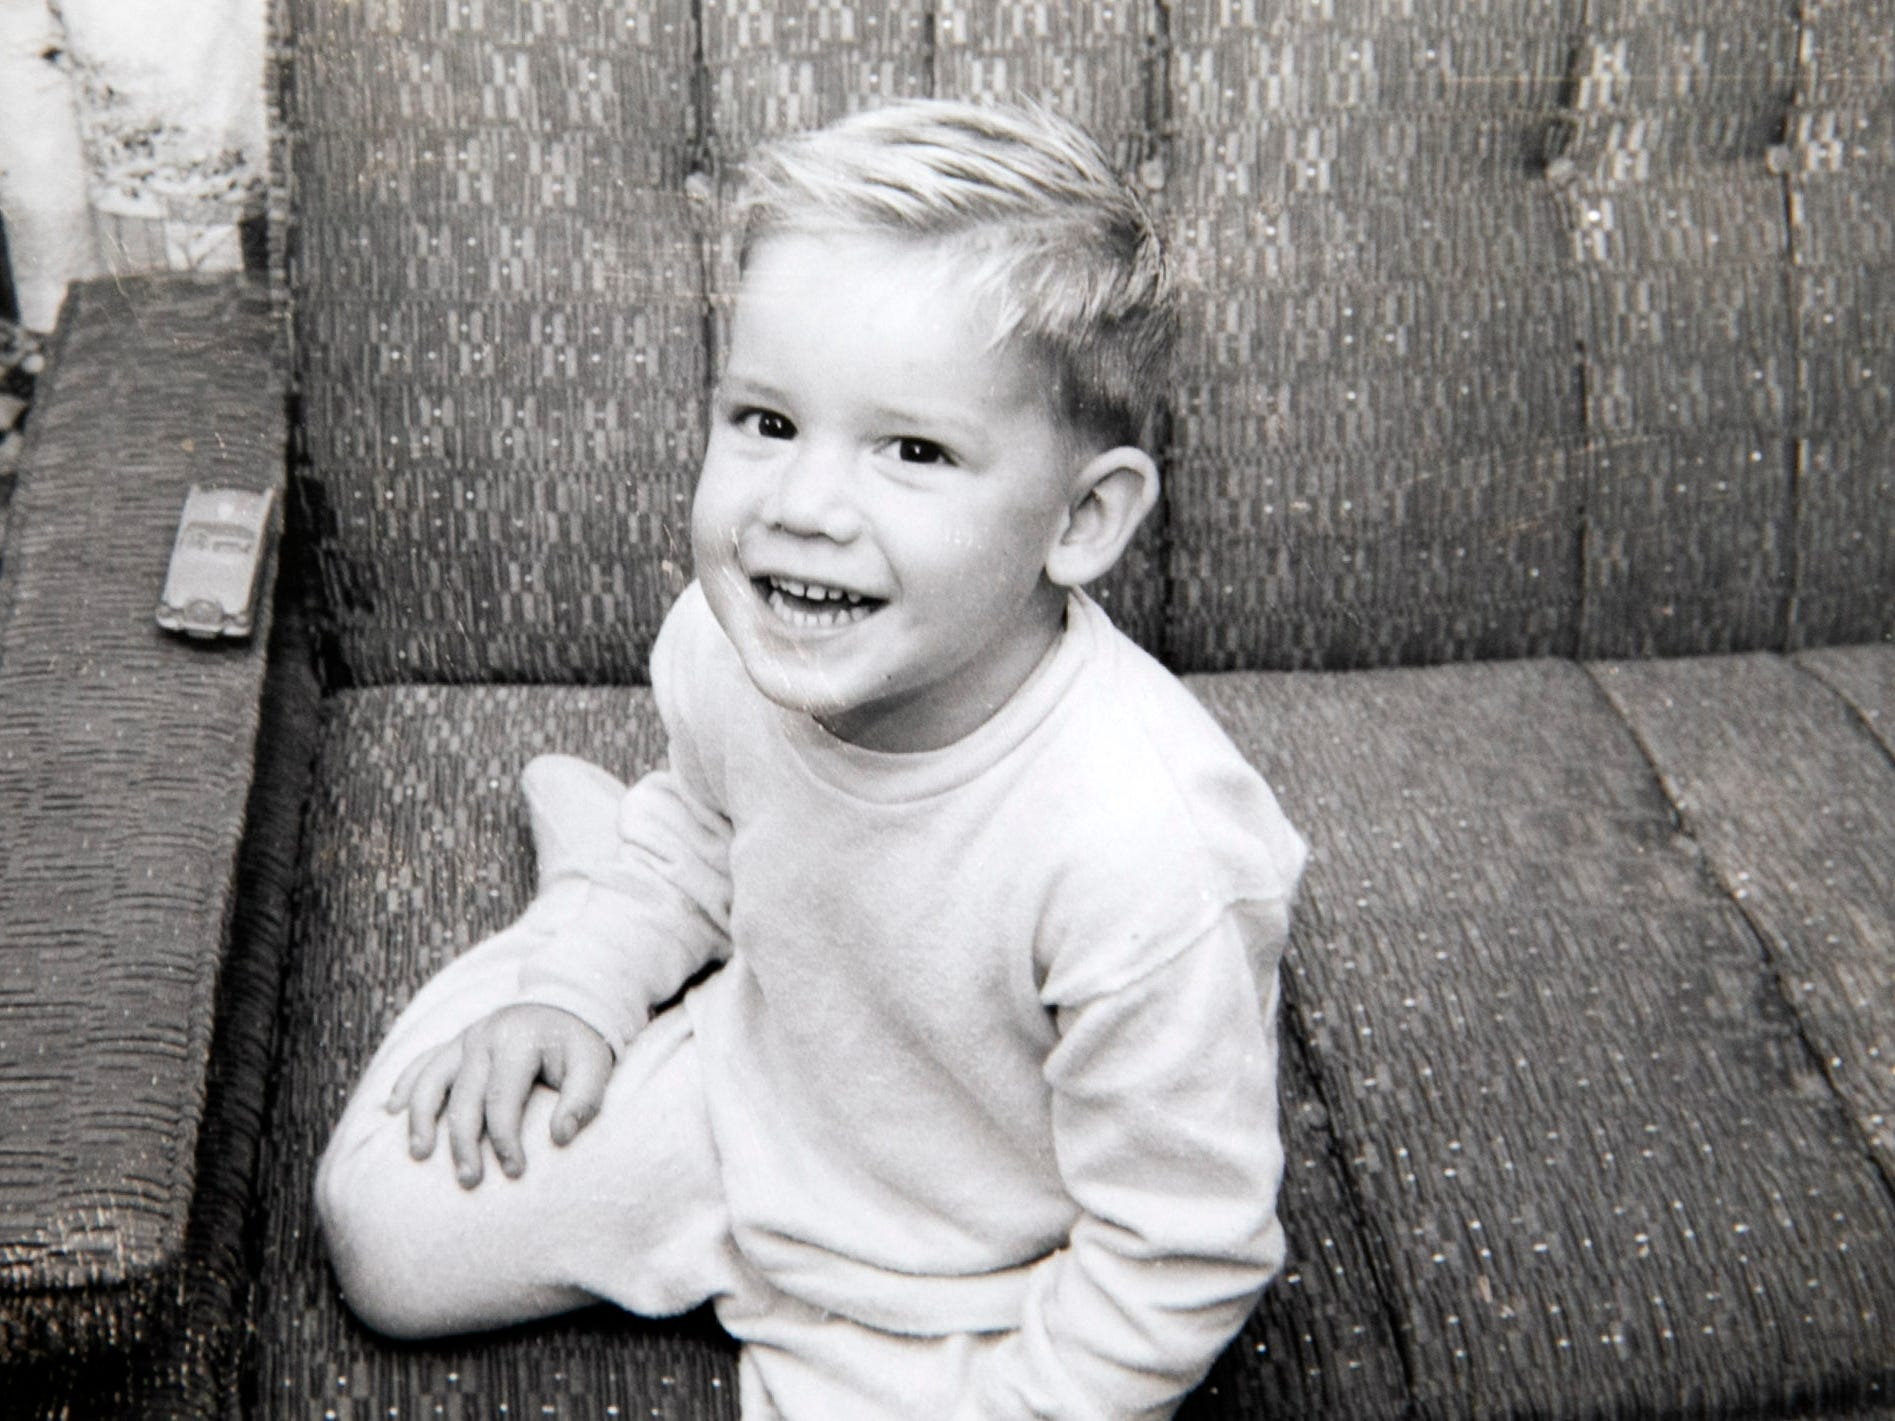 Three-year-old Michael Crow in Alameda, California, in 1959.